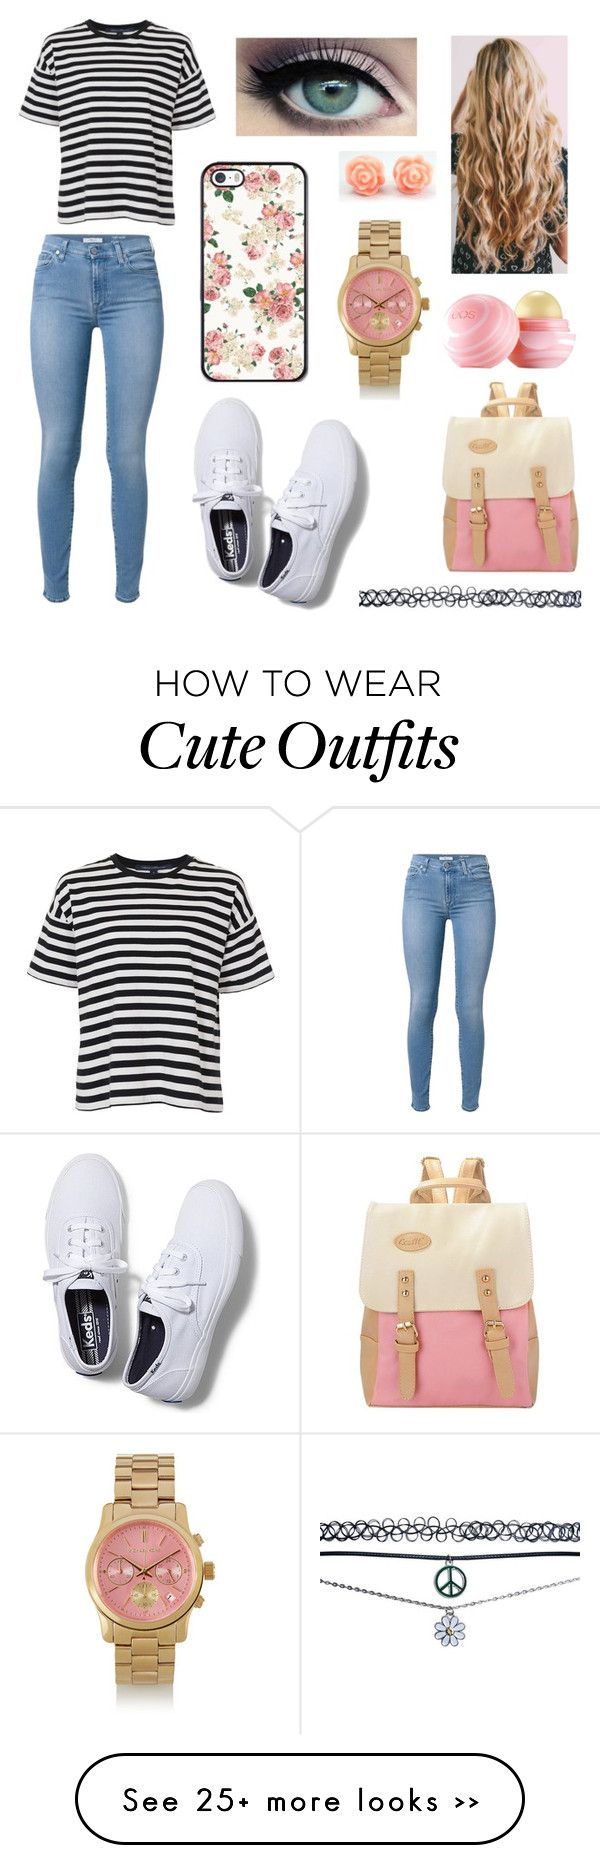 """Simple school outfit"" by katelyn-huynh on Polyvore featuring French Connection, 7 For All Mankind, Keds, Michael Kors, Wet Seal and Eos"